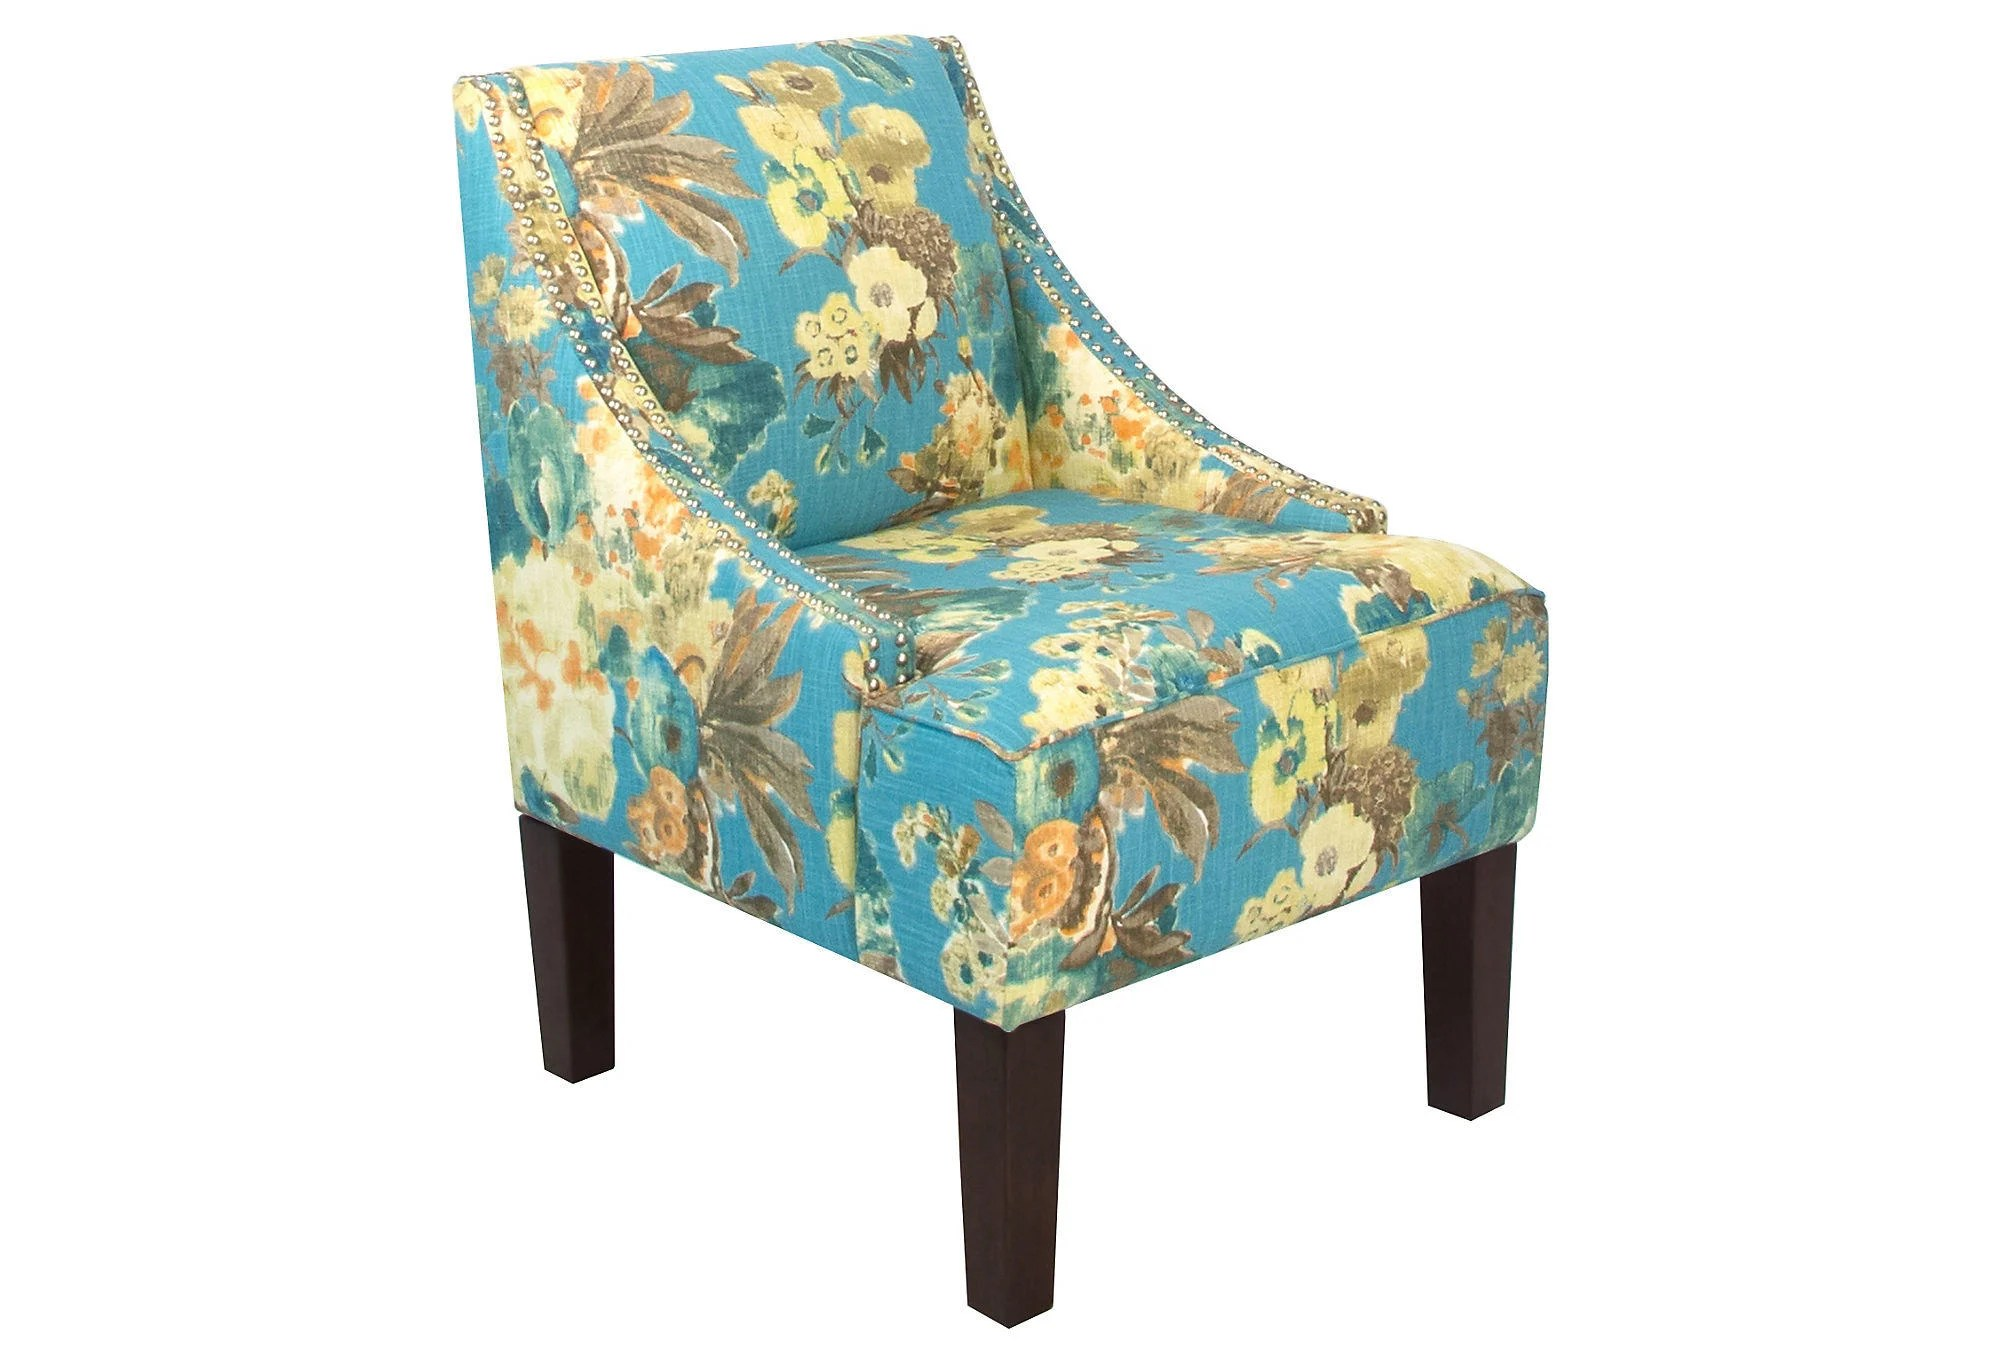 Floral Chairs Cam Swoop Arm Chair Blue Floral Accent From One Kings Lane